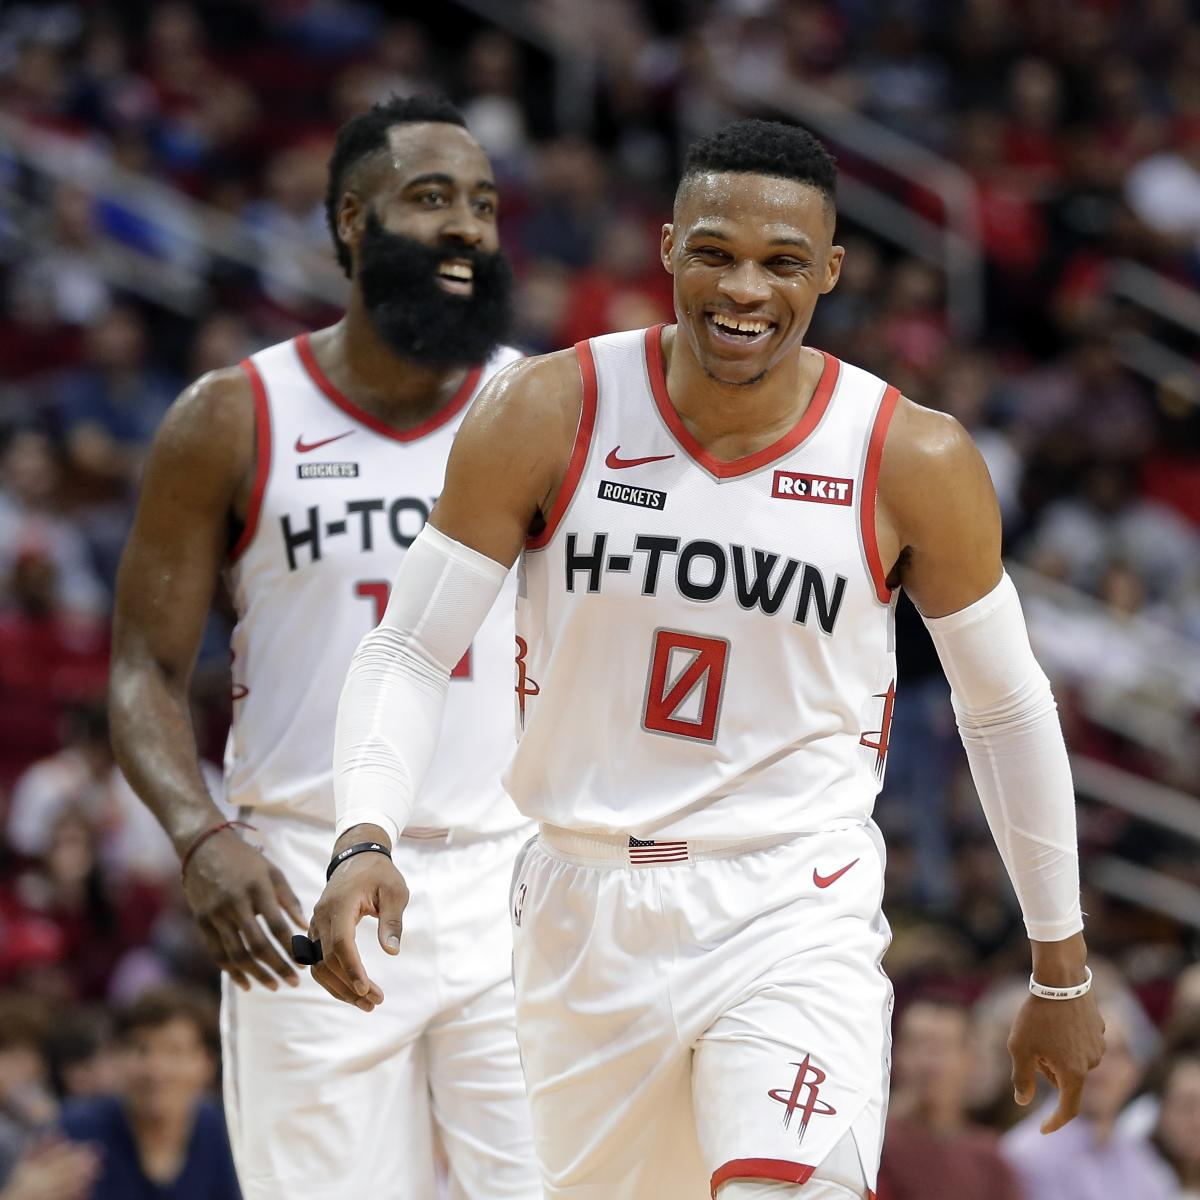 NBA Playoffs 2020: Predictions for Top Seeds and Final Postseason Standings